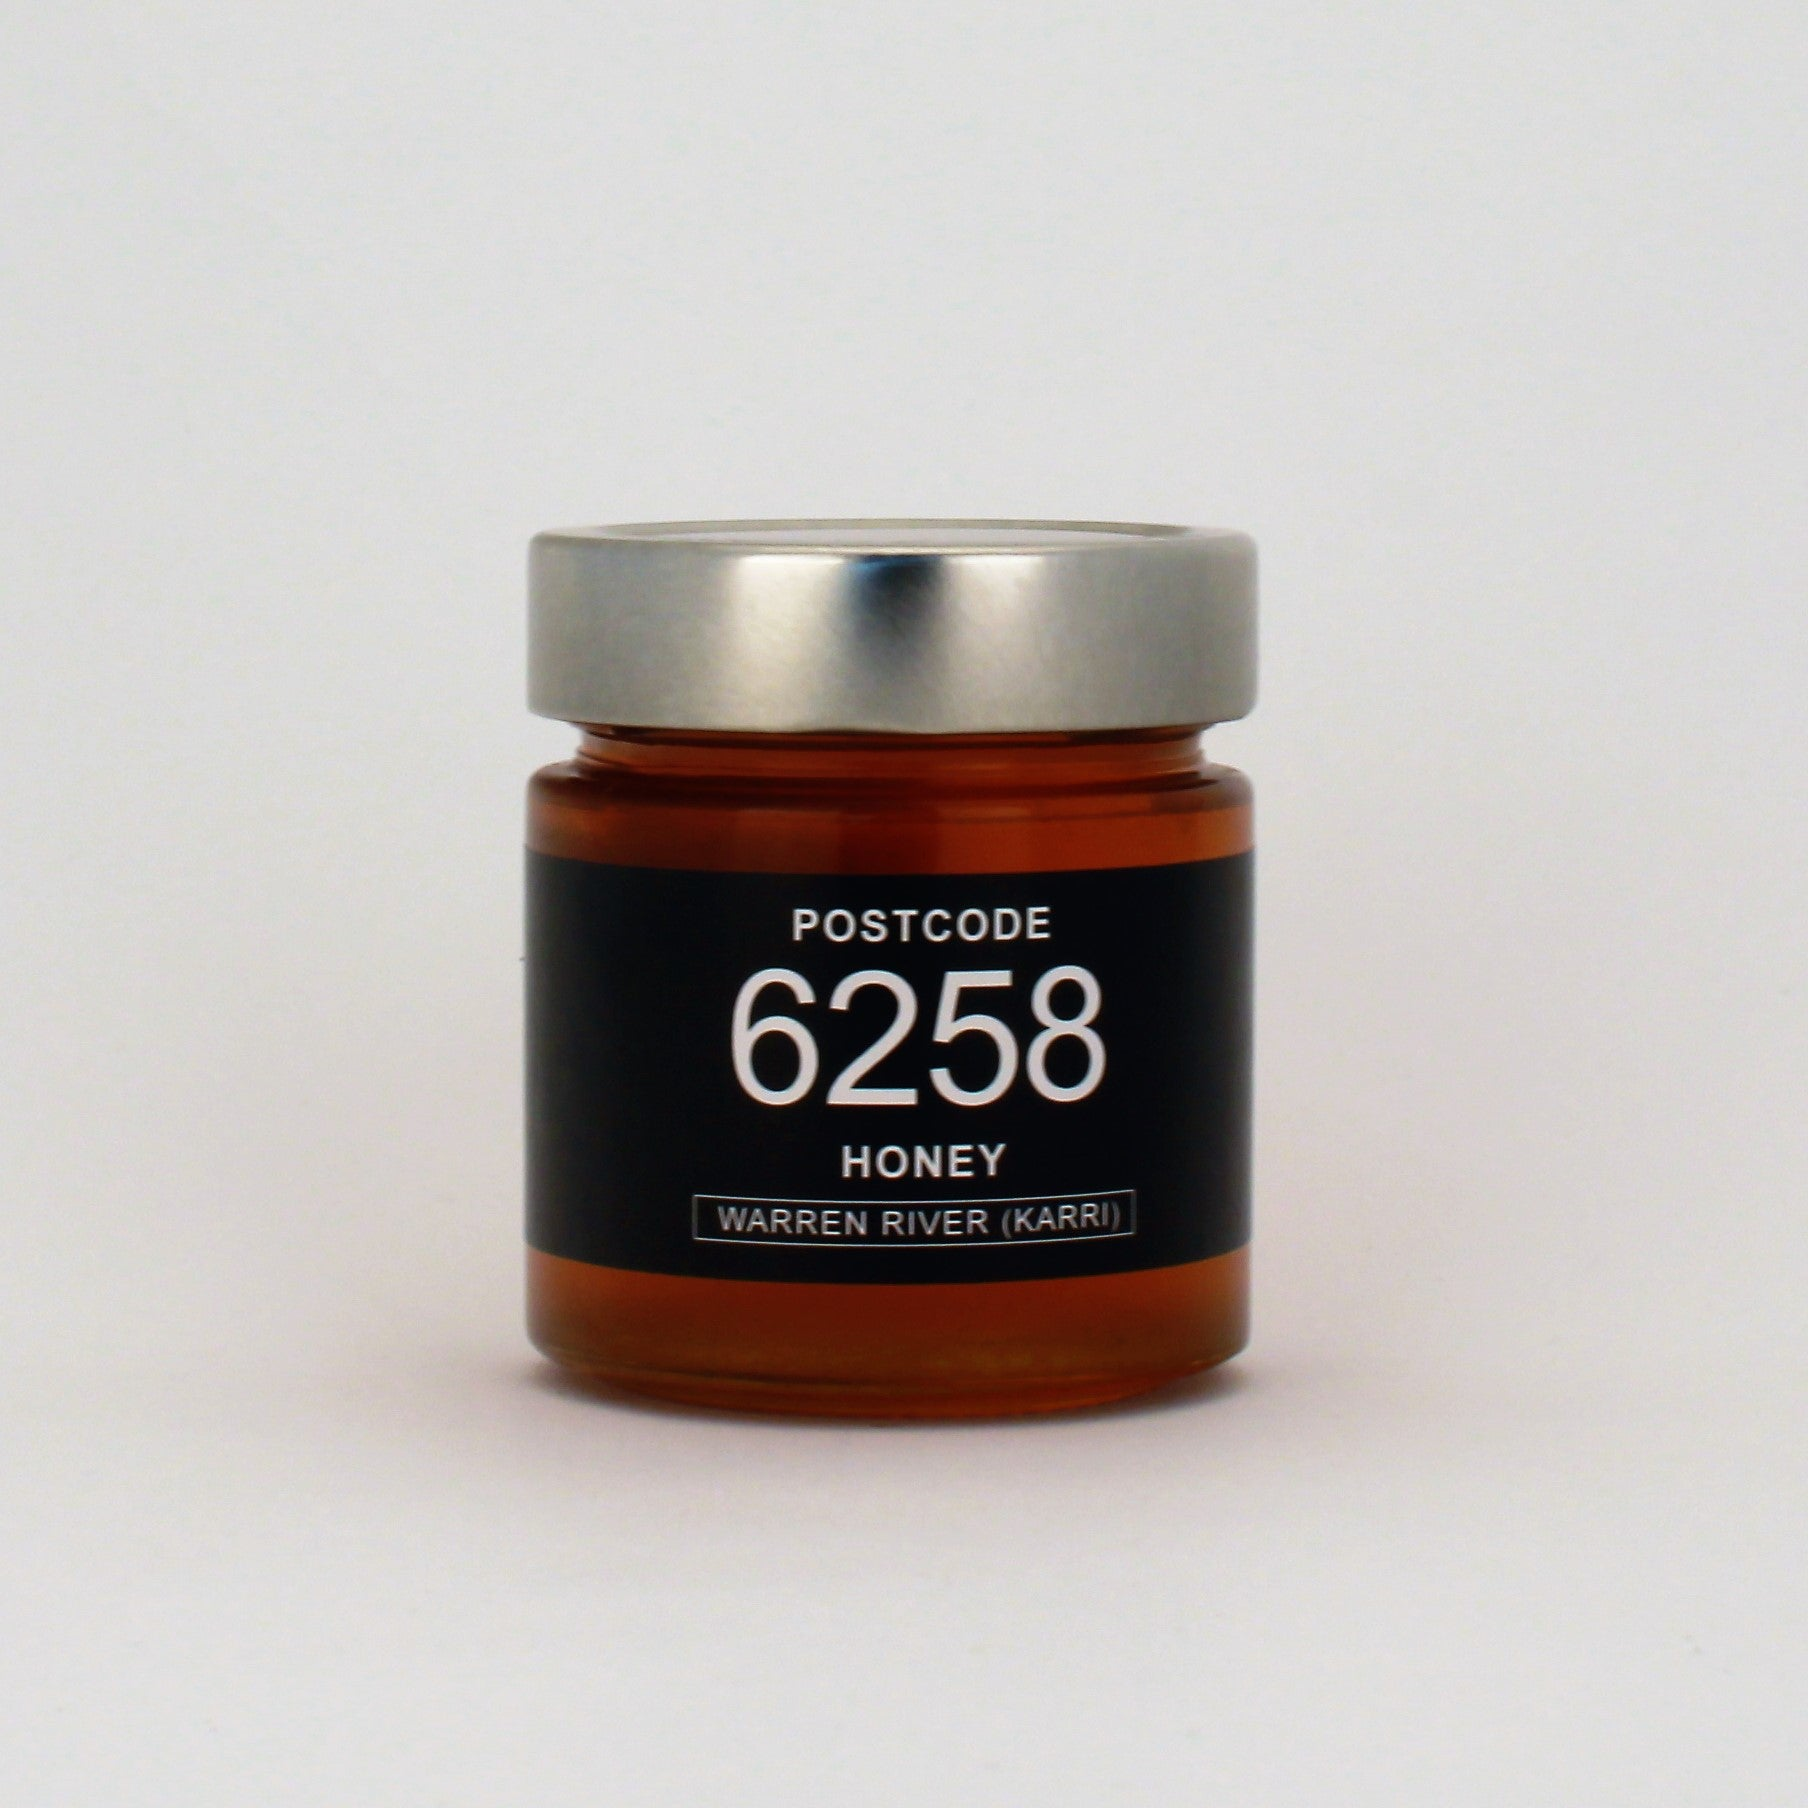 Postcode Honey KARRI 6258